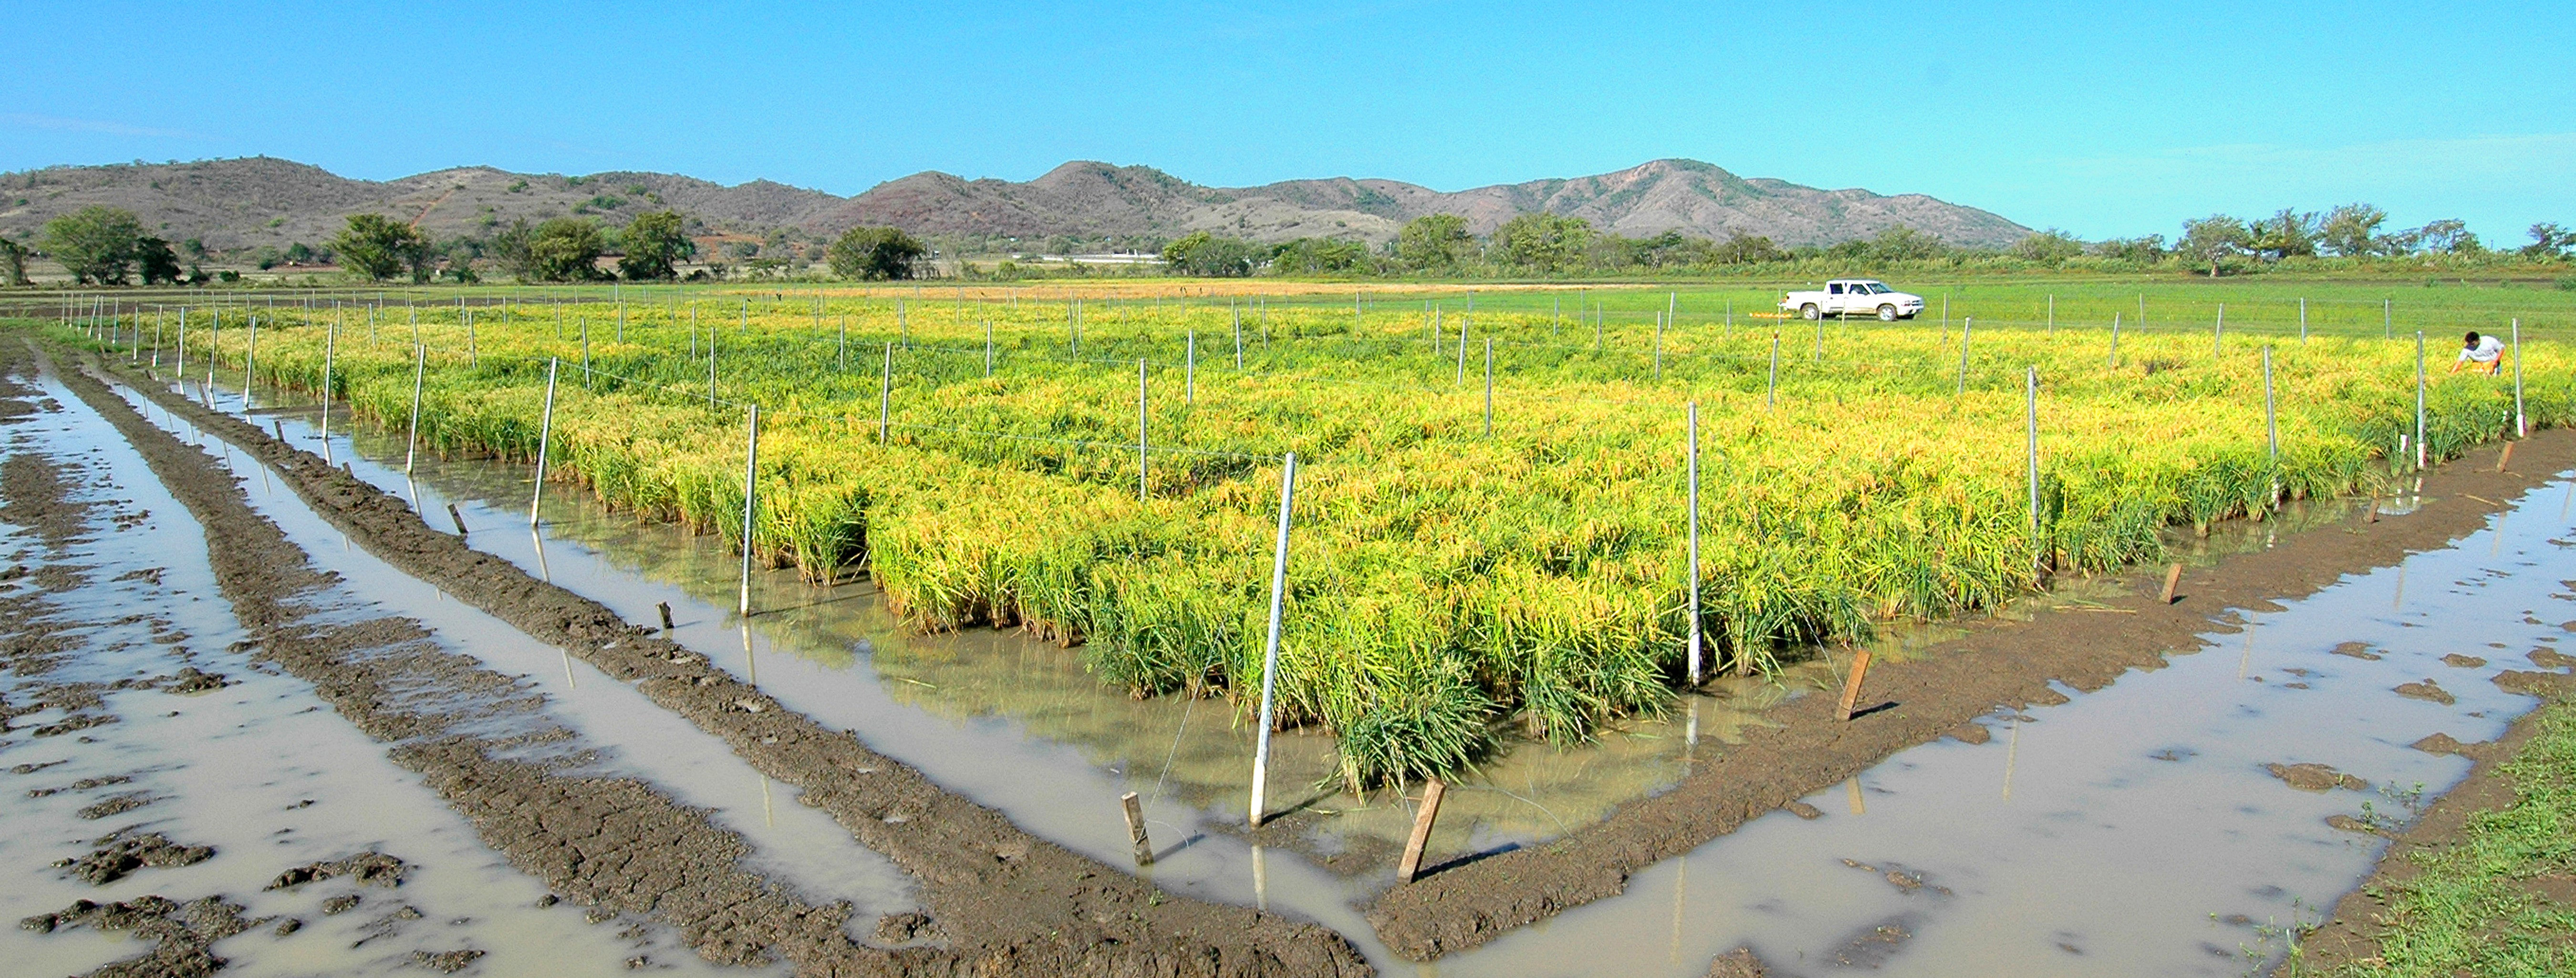 lsu rice nursery.jpg thumbnail